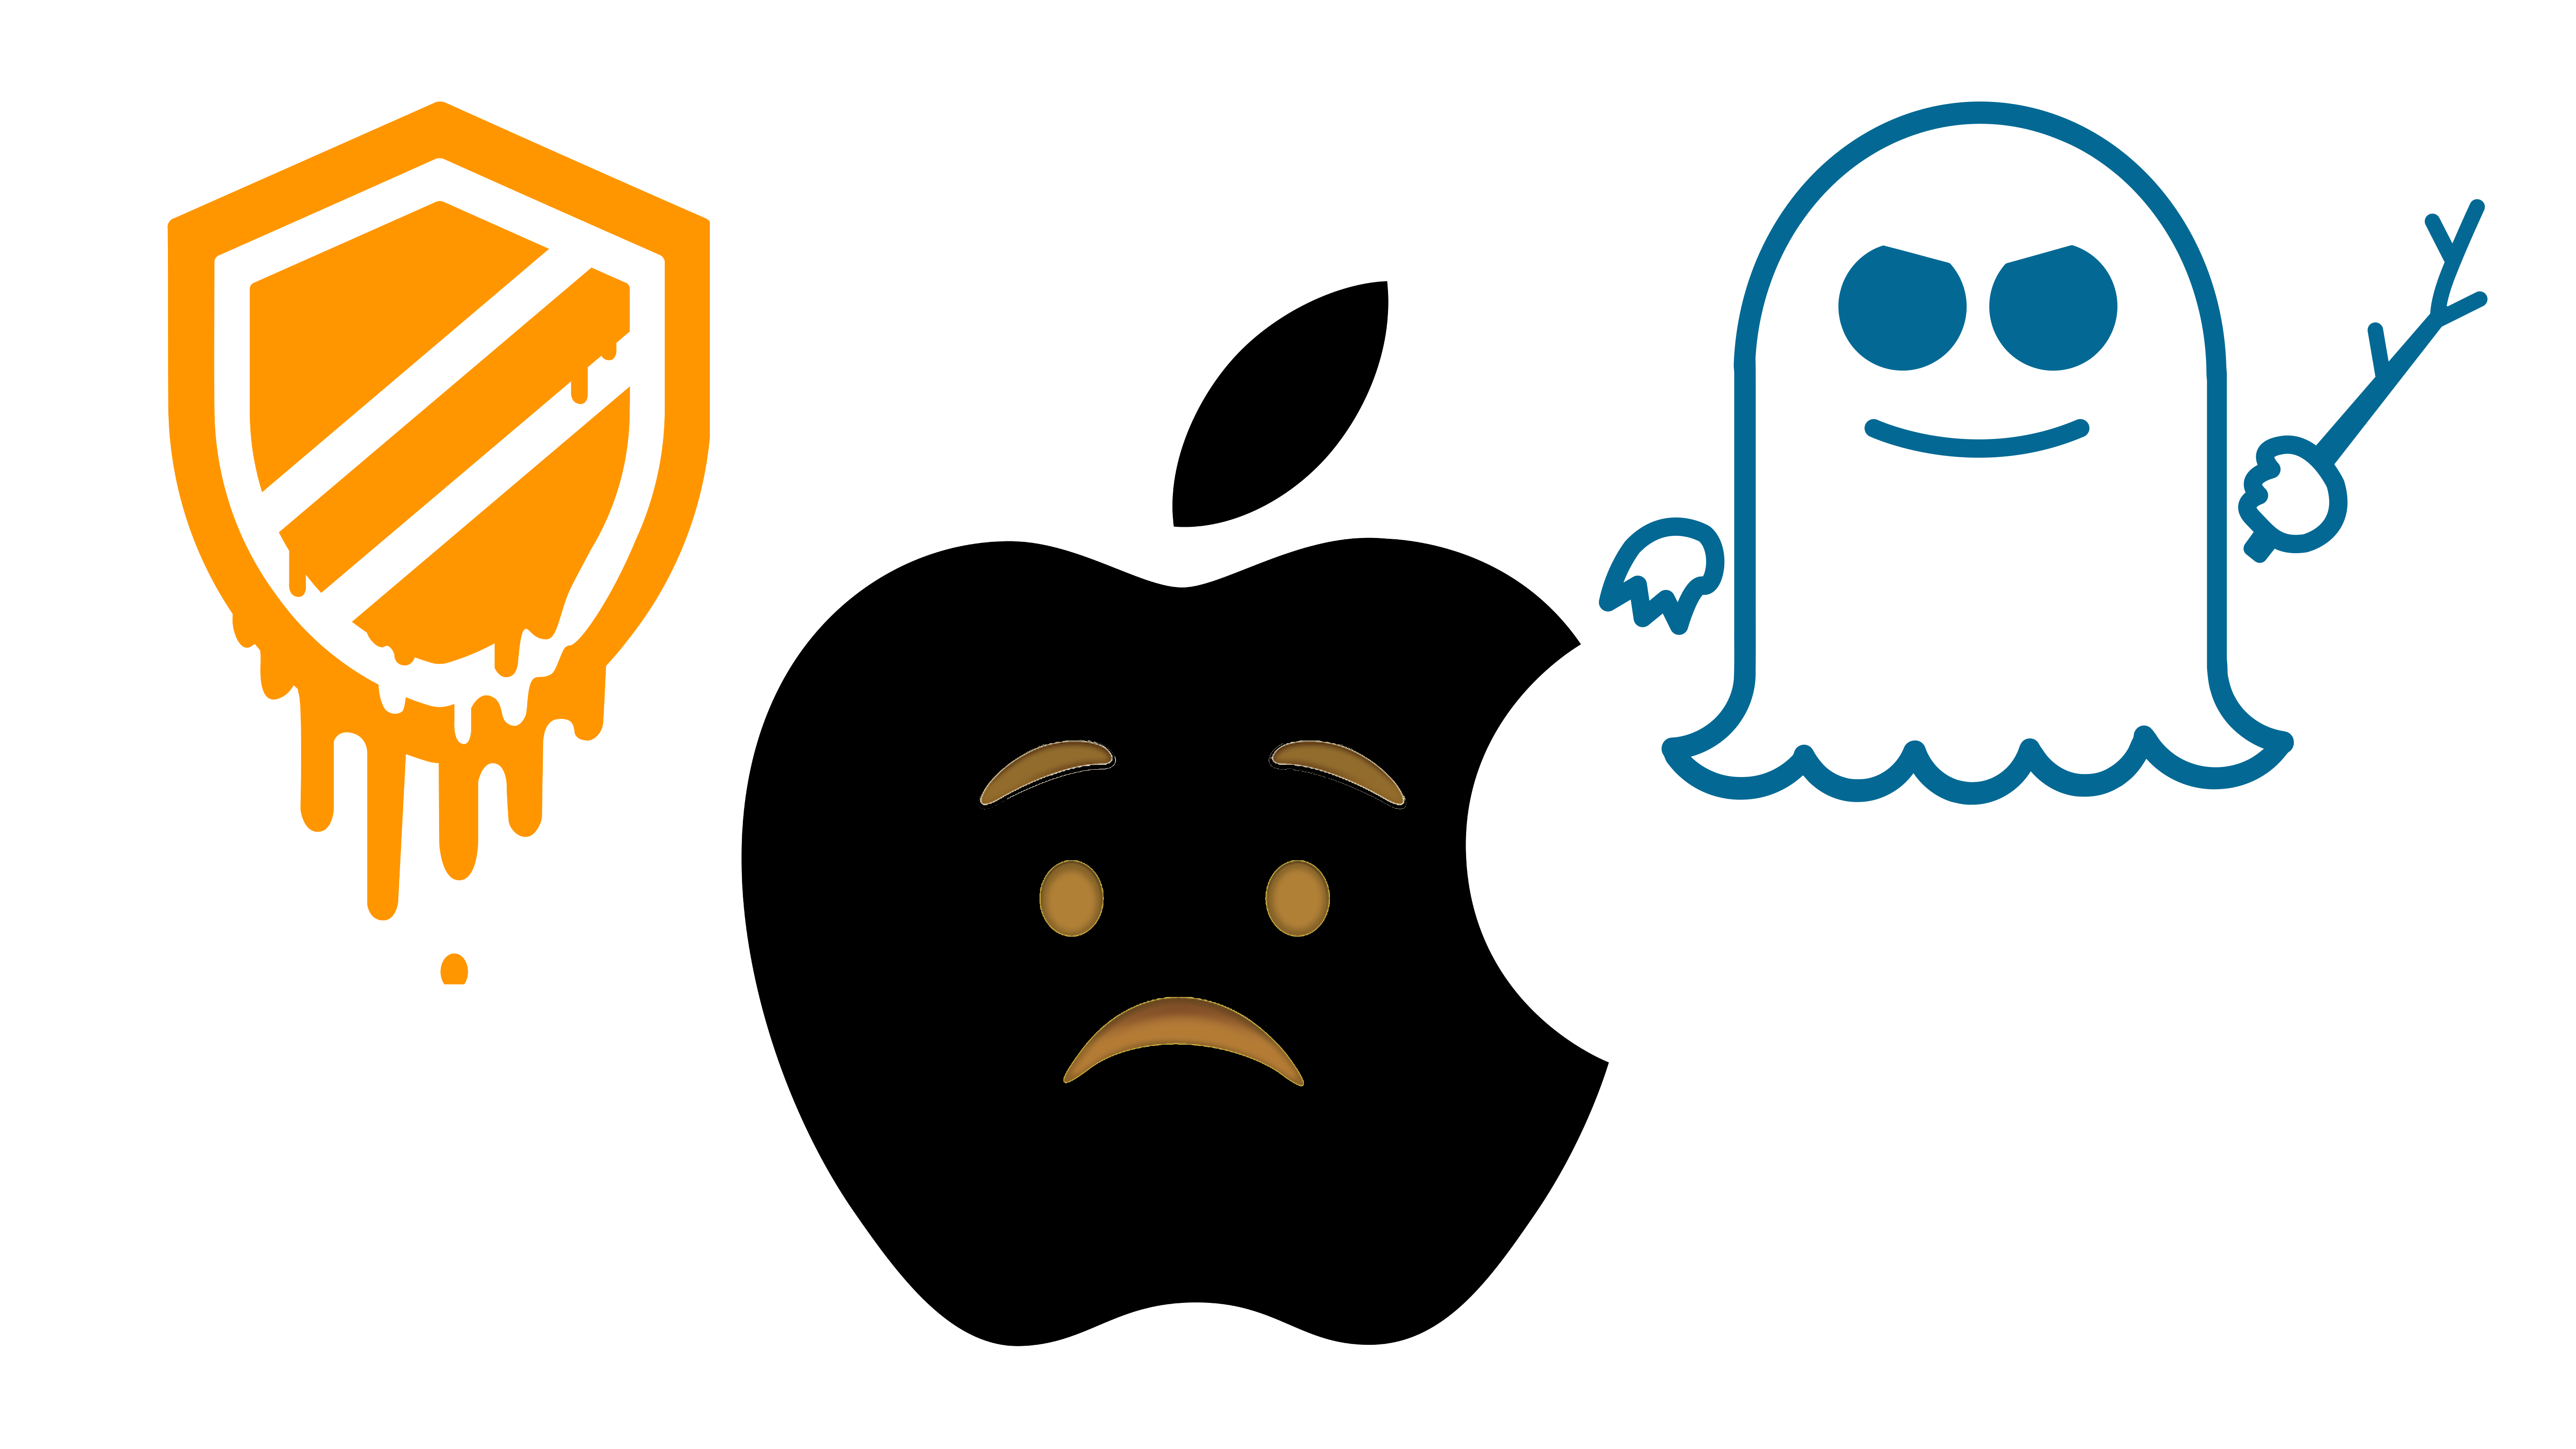 Happy apple running clipart jpg transparent Meltdown and Spectre: What Apple Users Need to Know | The Mac ... jpg transparent